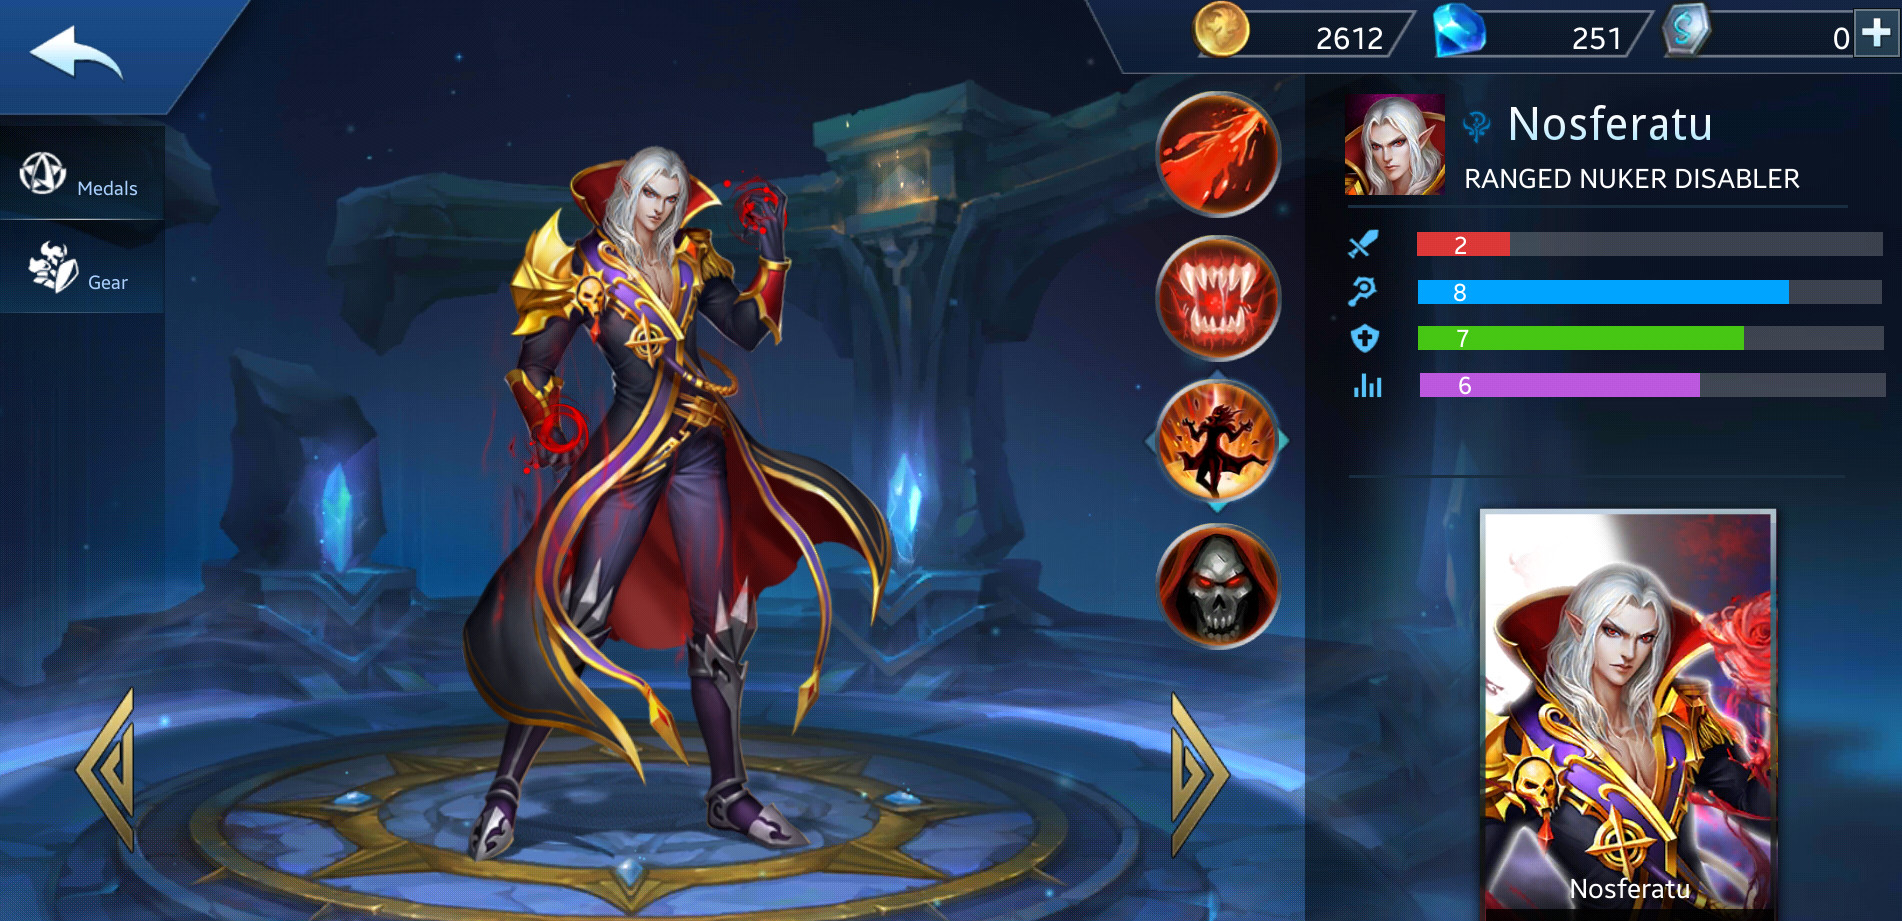 Photo of Nosferatu Build Guide In Heroes Evolved Mobile Game